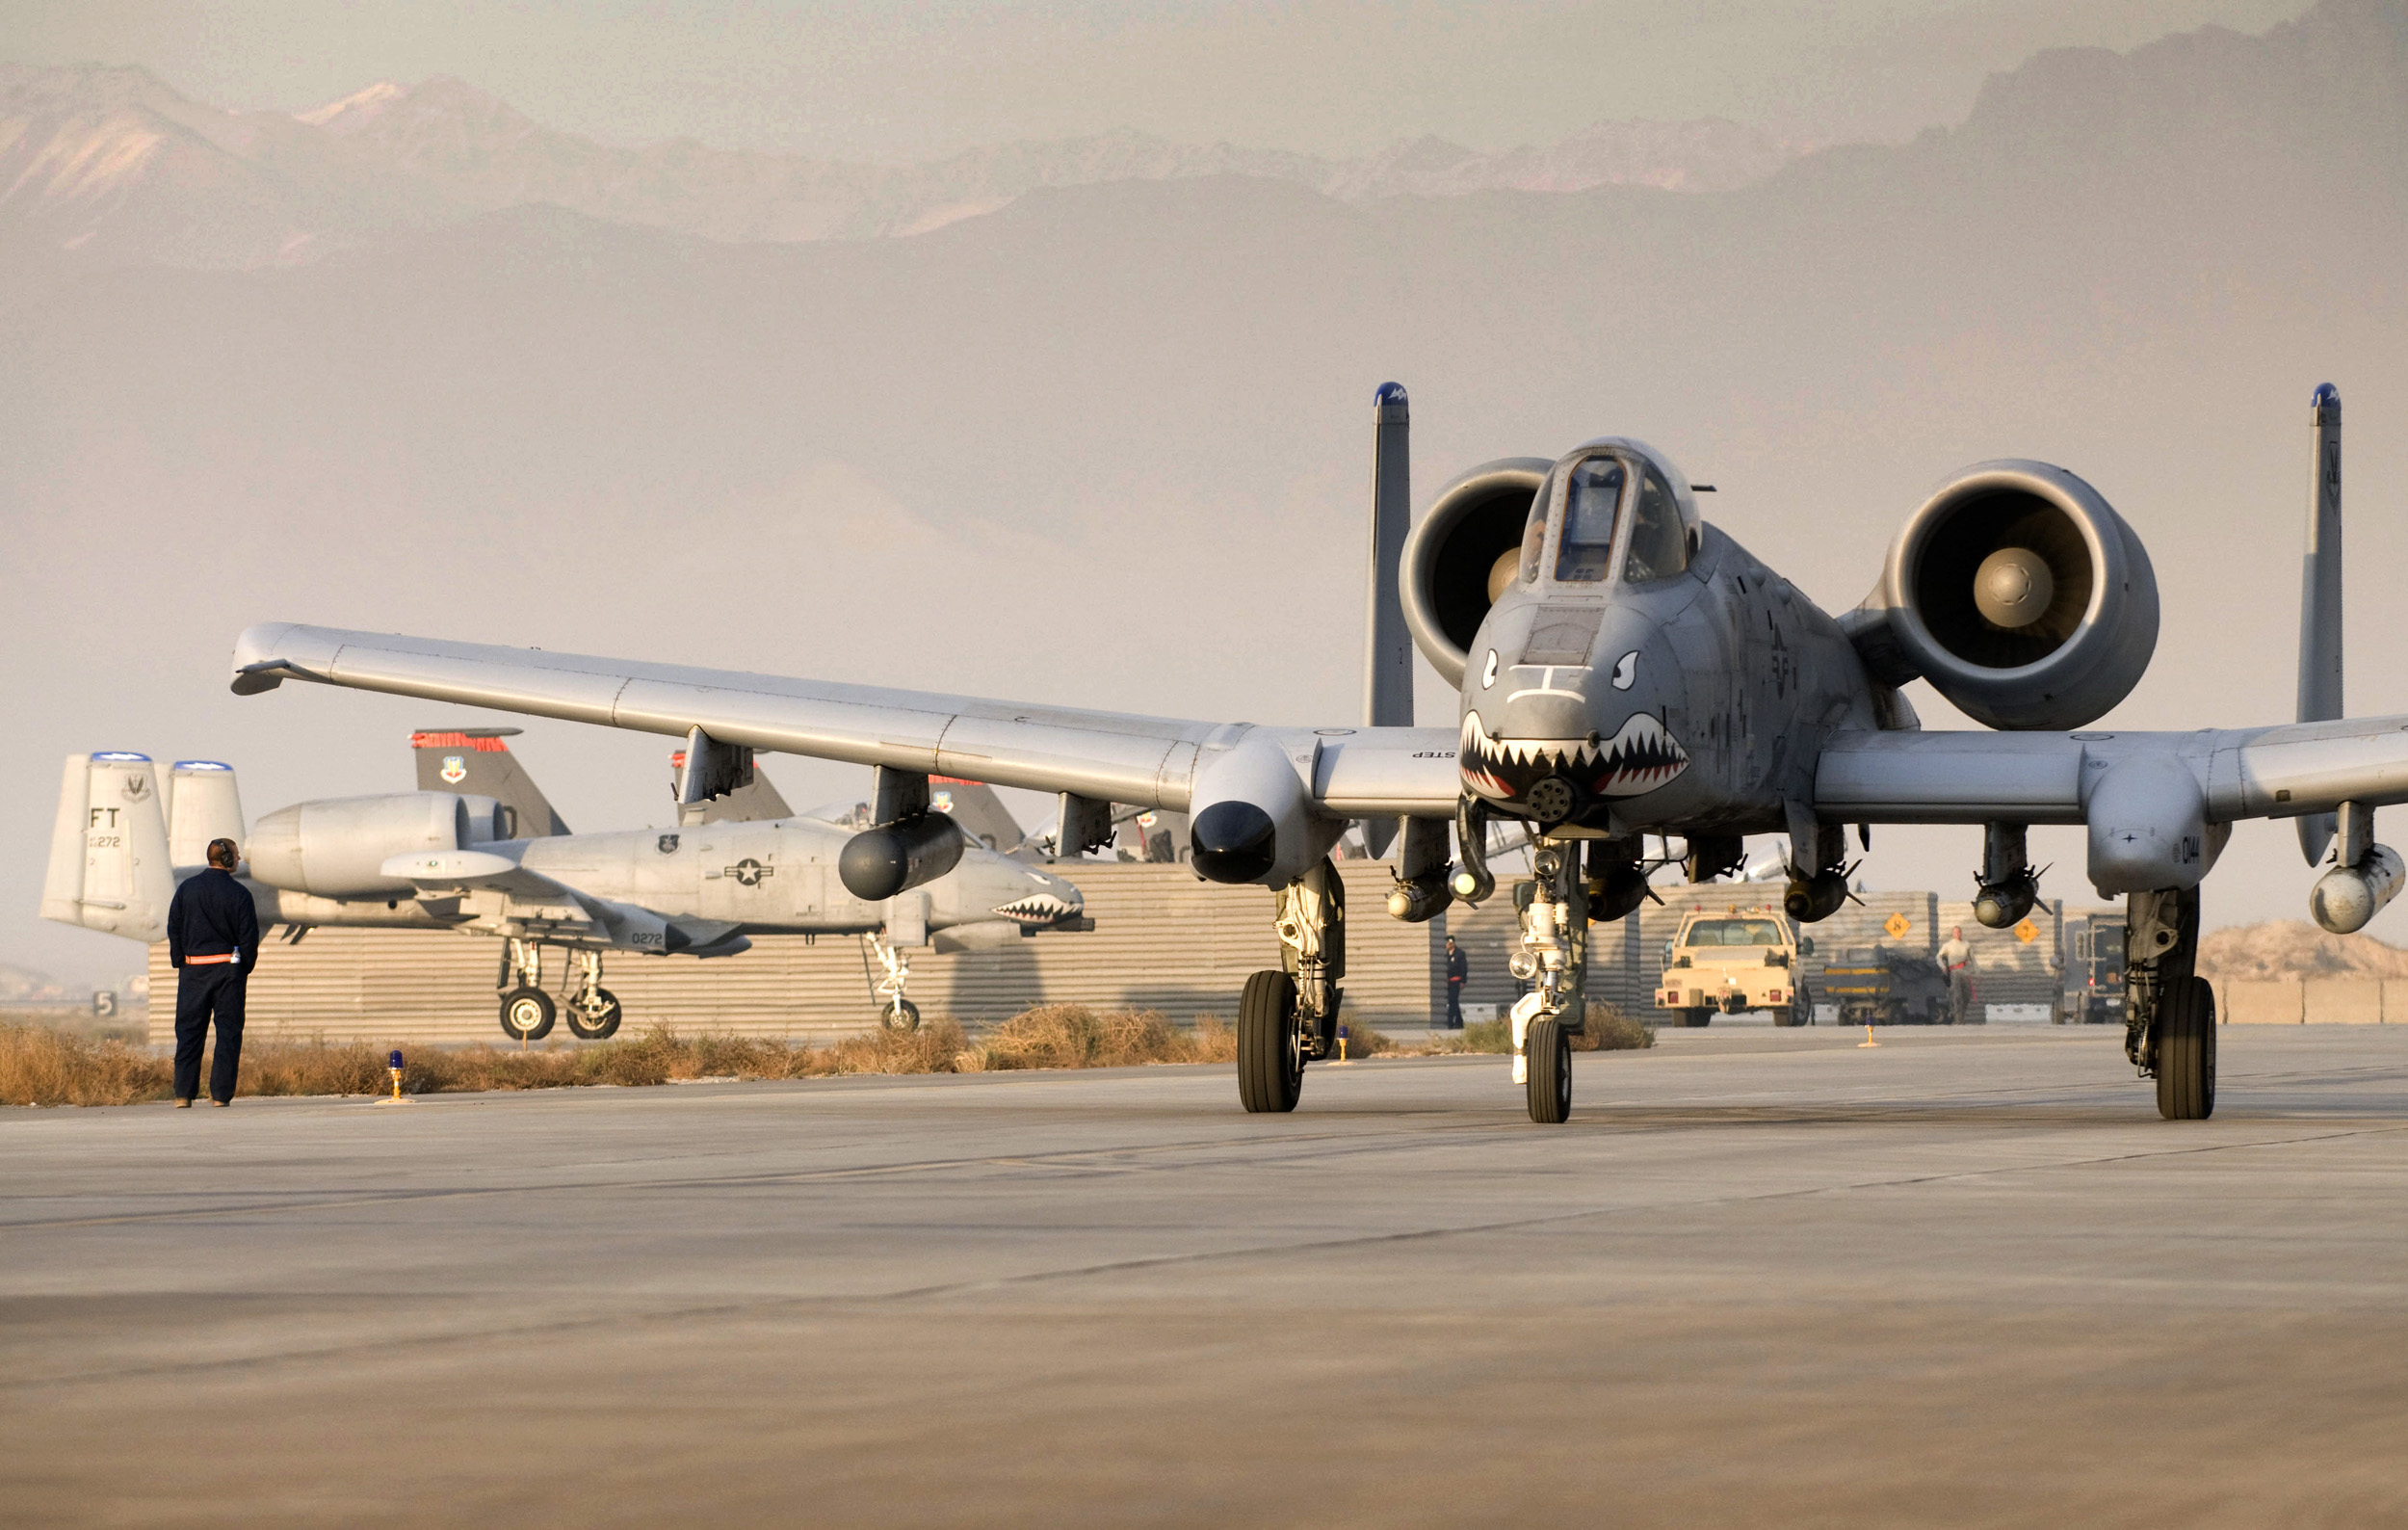 File:081202-A-10 Thunderbolt II at Bagram Airfield.jpg - Wikimedia ...